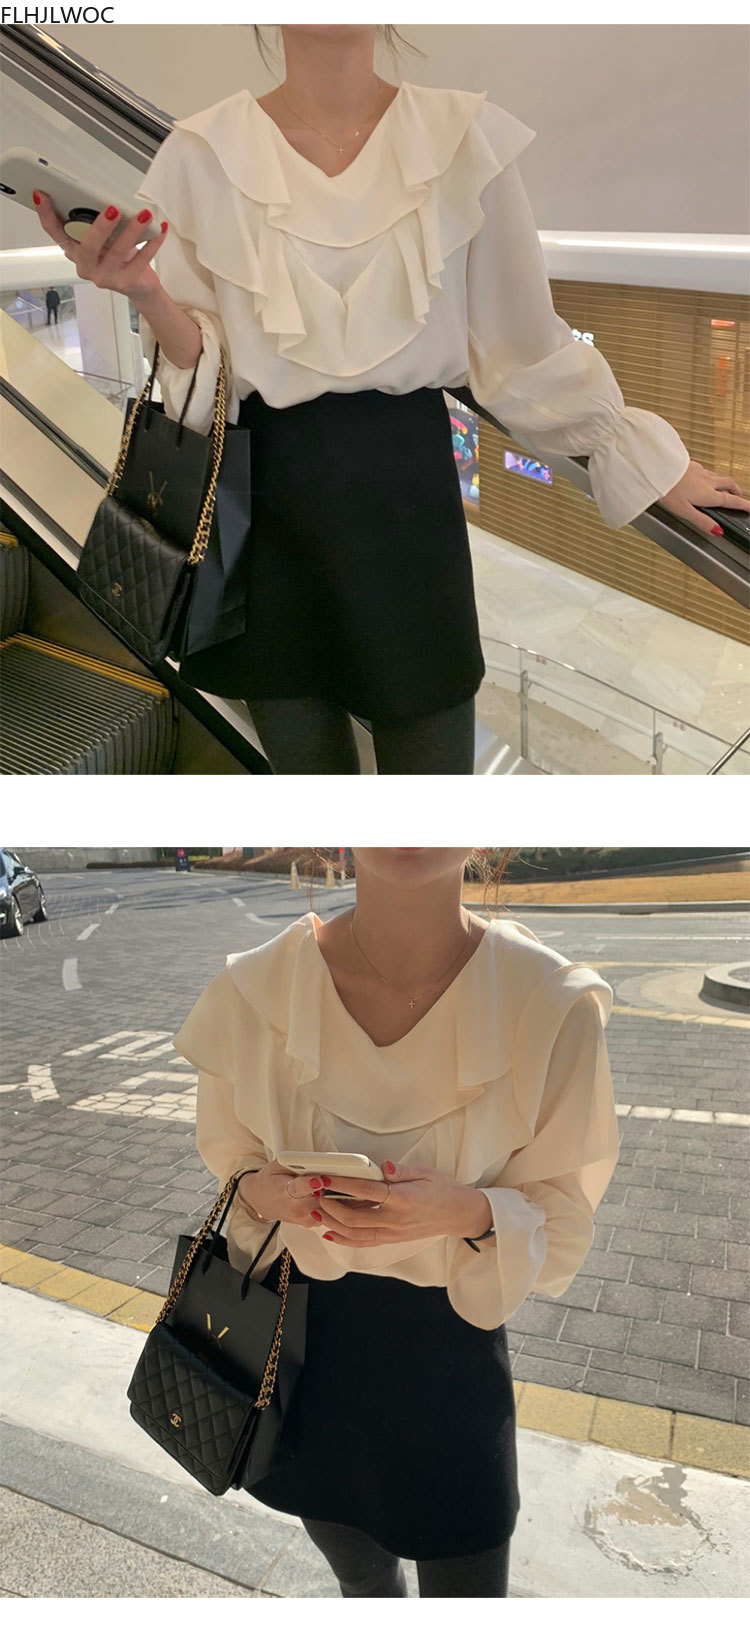 2020 Autumn Basic Shirts Long Sleeve Cute Casual Loose Back Bow Tie White Black Women Ruffled Chic Tops And Blouses